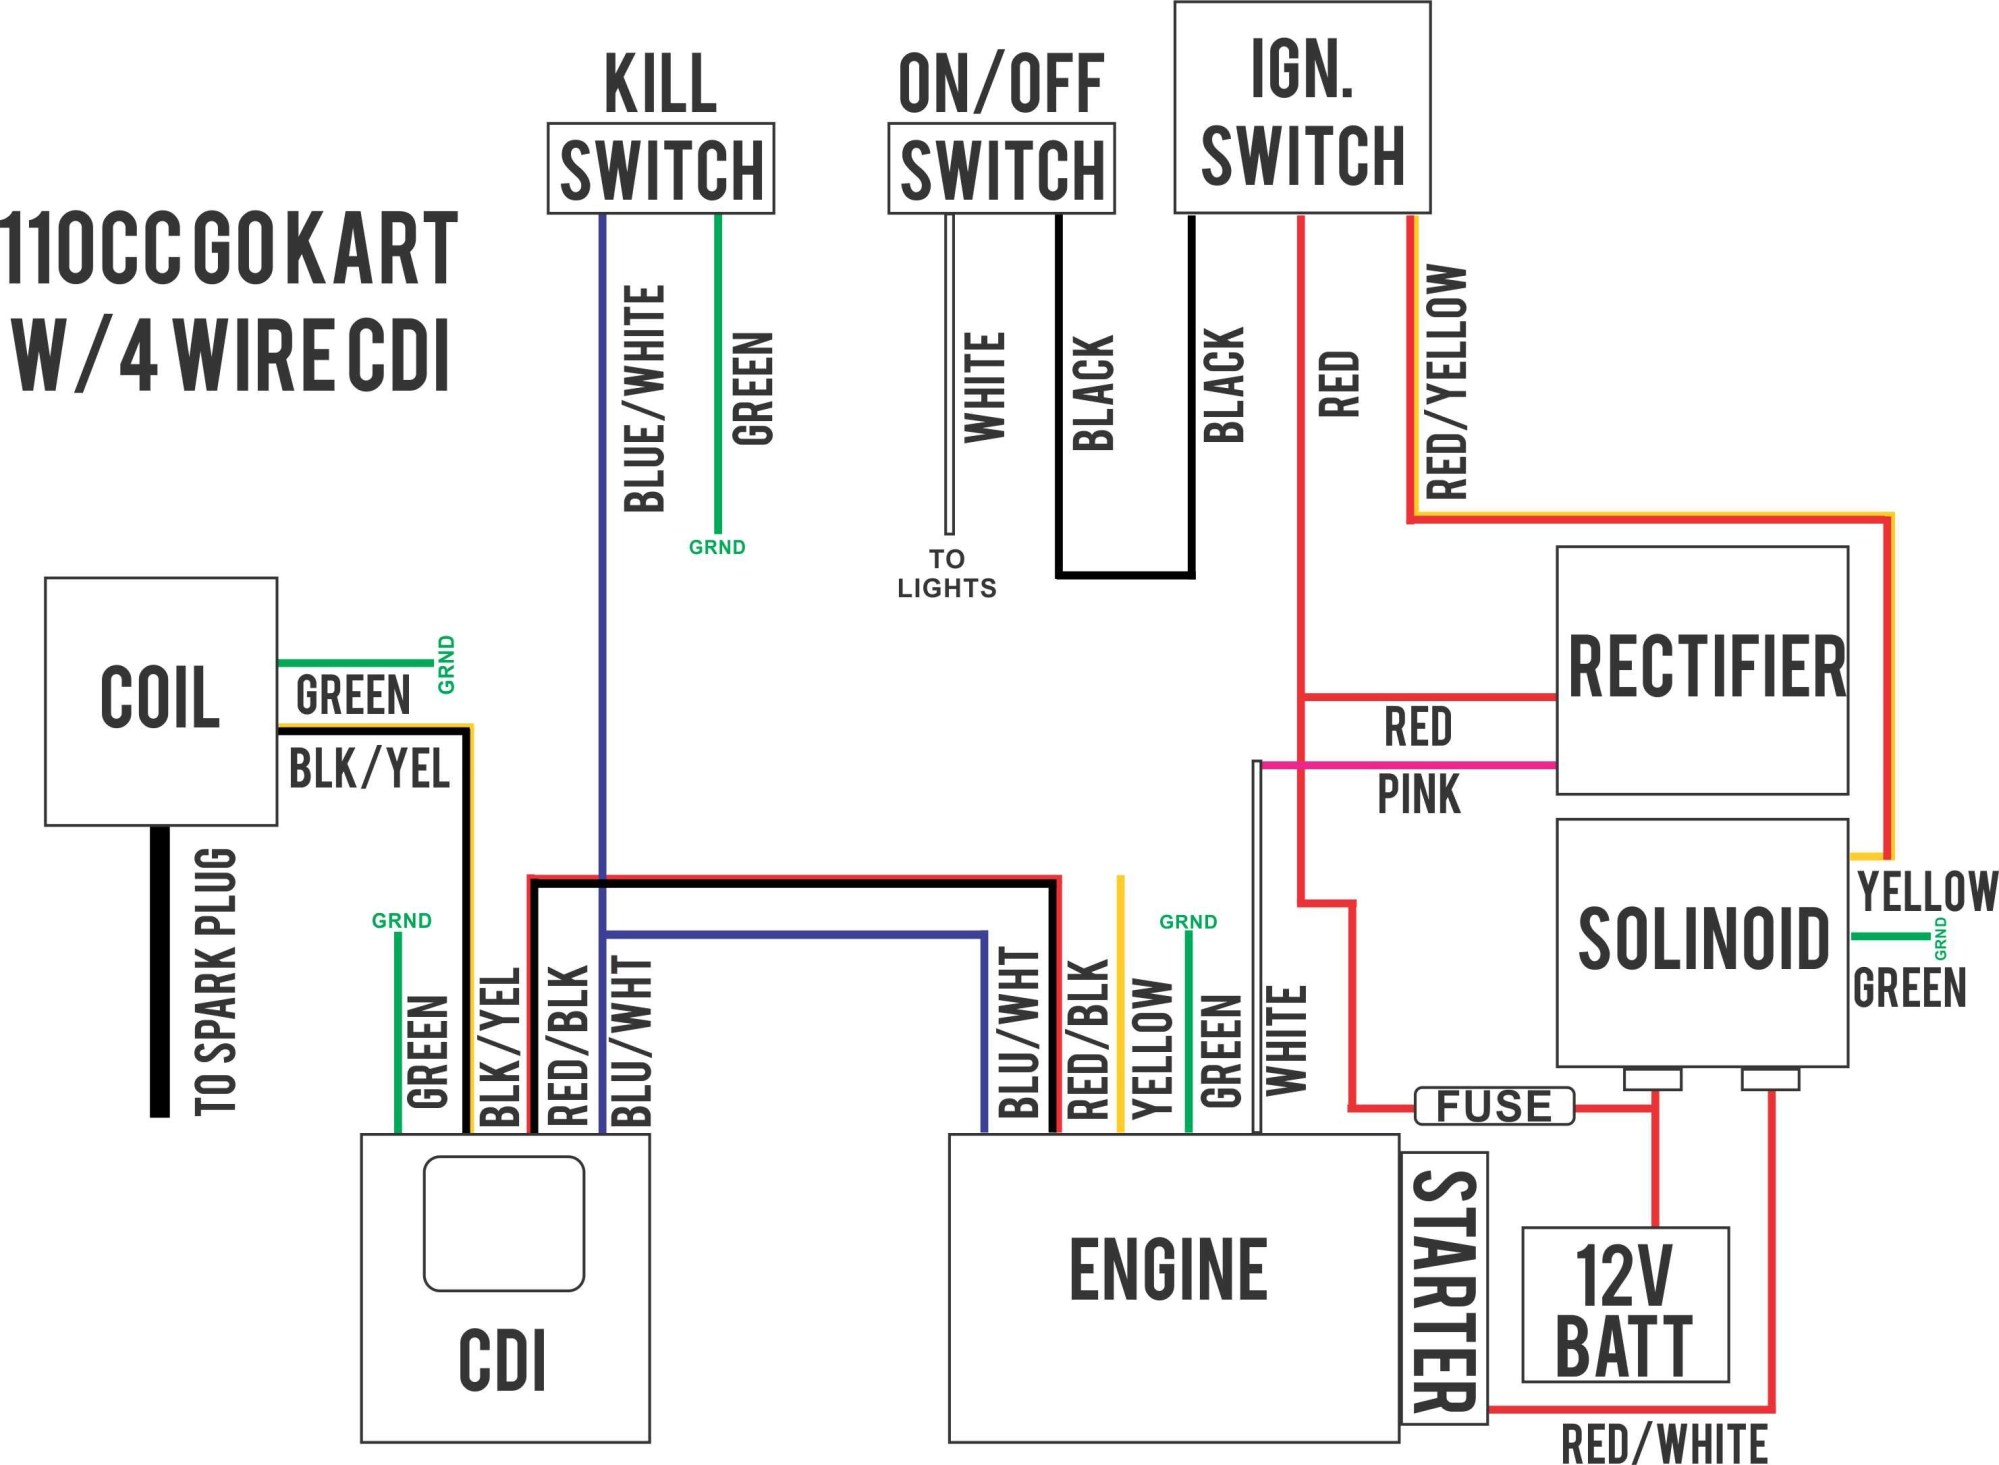 hight resolution of 5 wire cdi diagram wiring diagram dat dc 5 wire cdi diagram